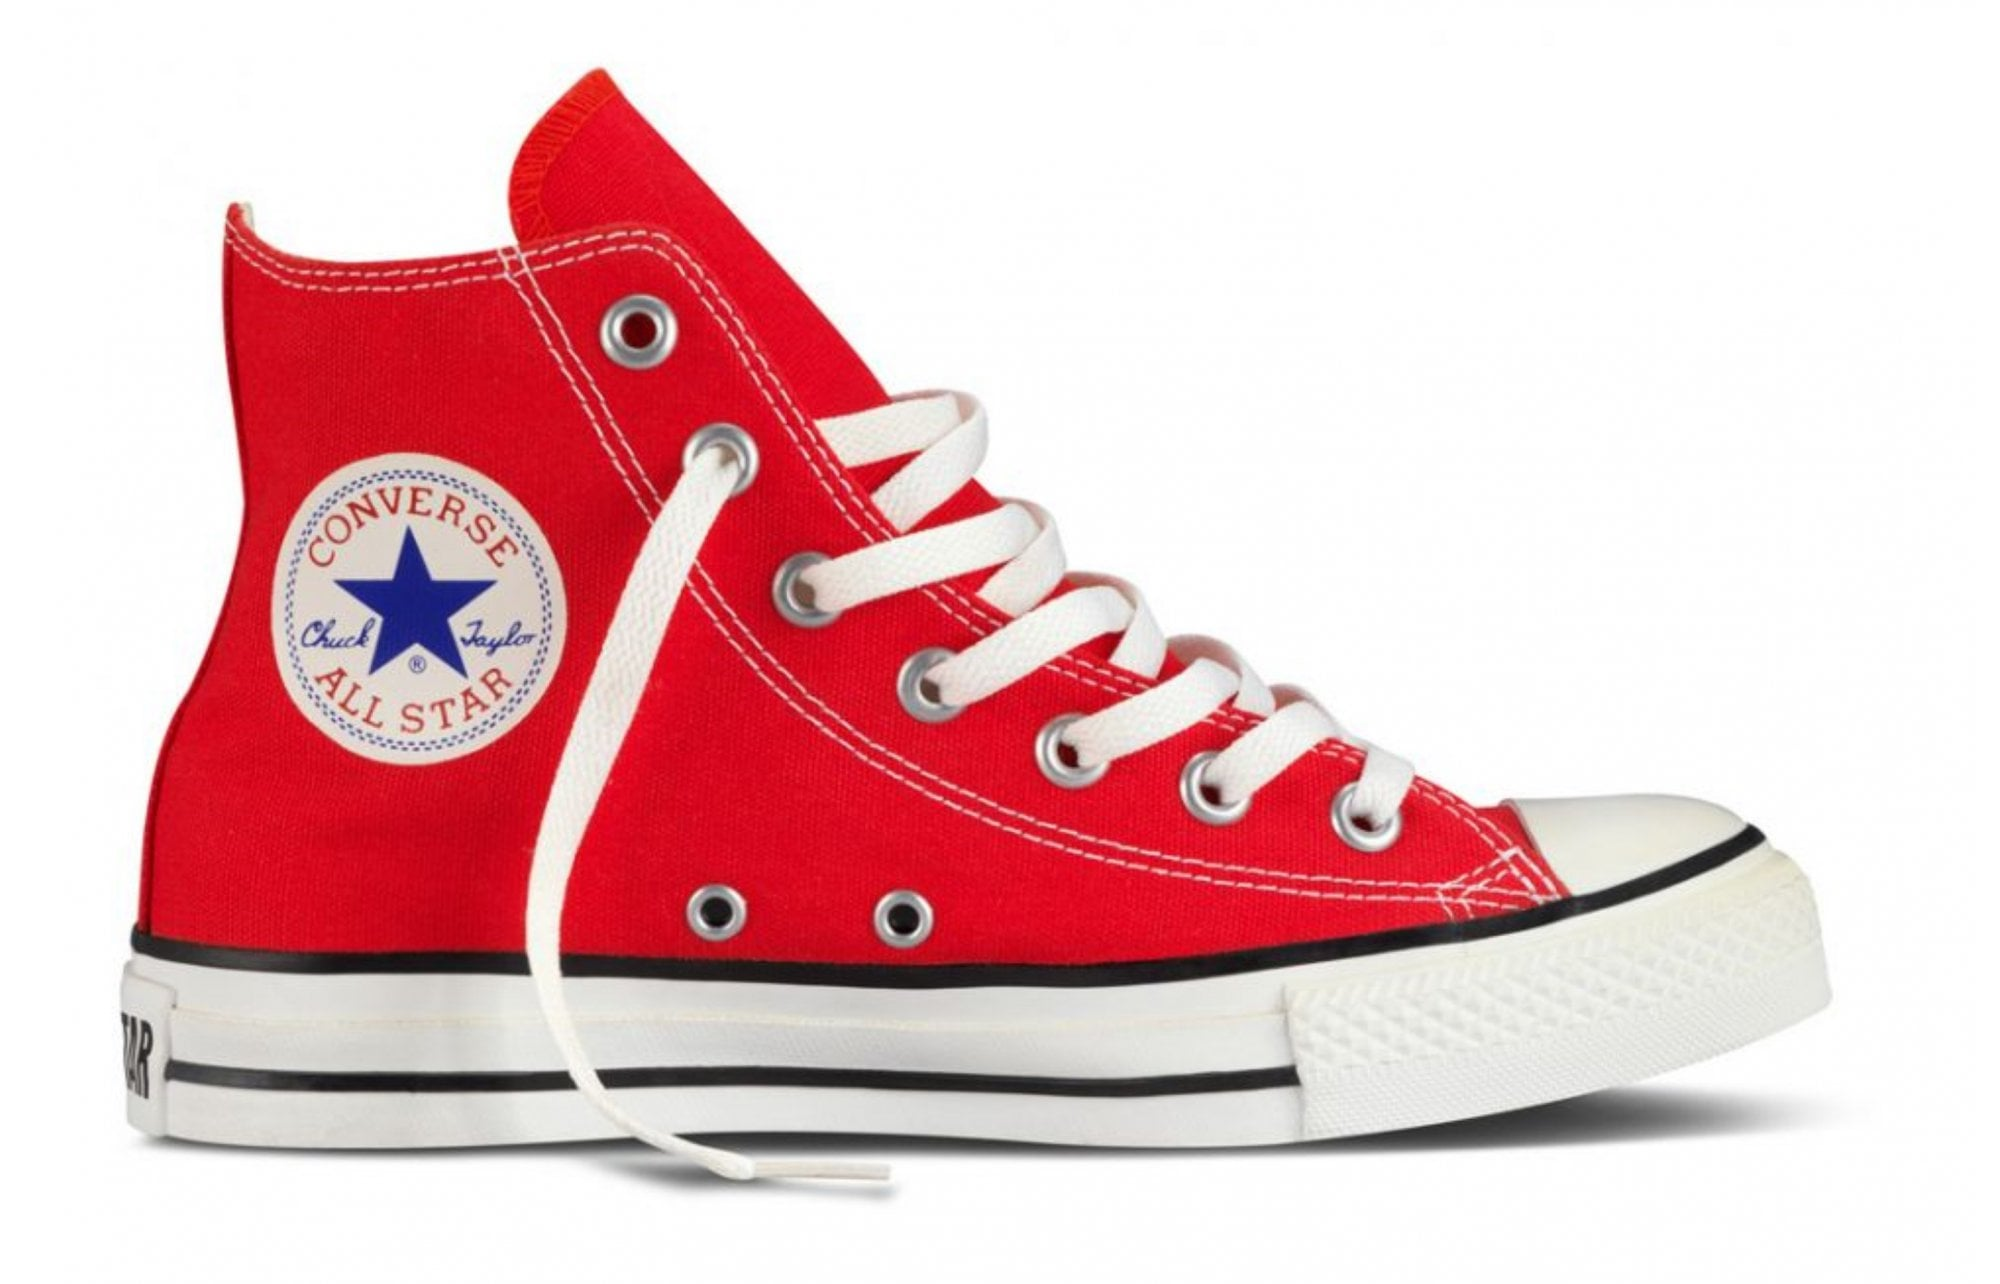 Star Core Youth High Tops - Red